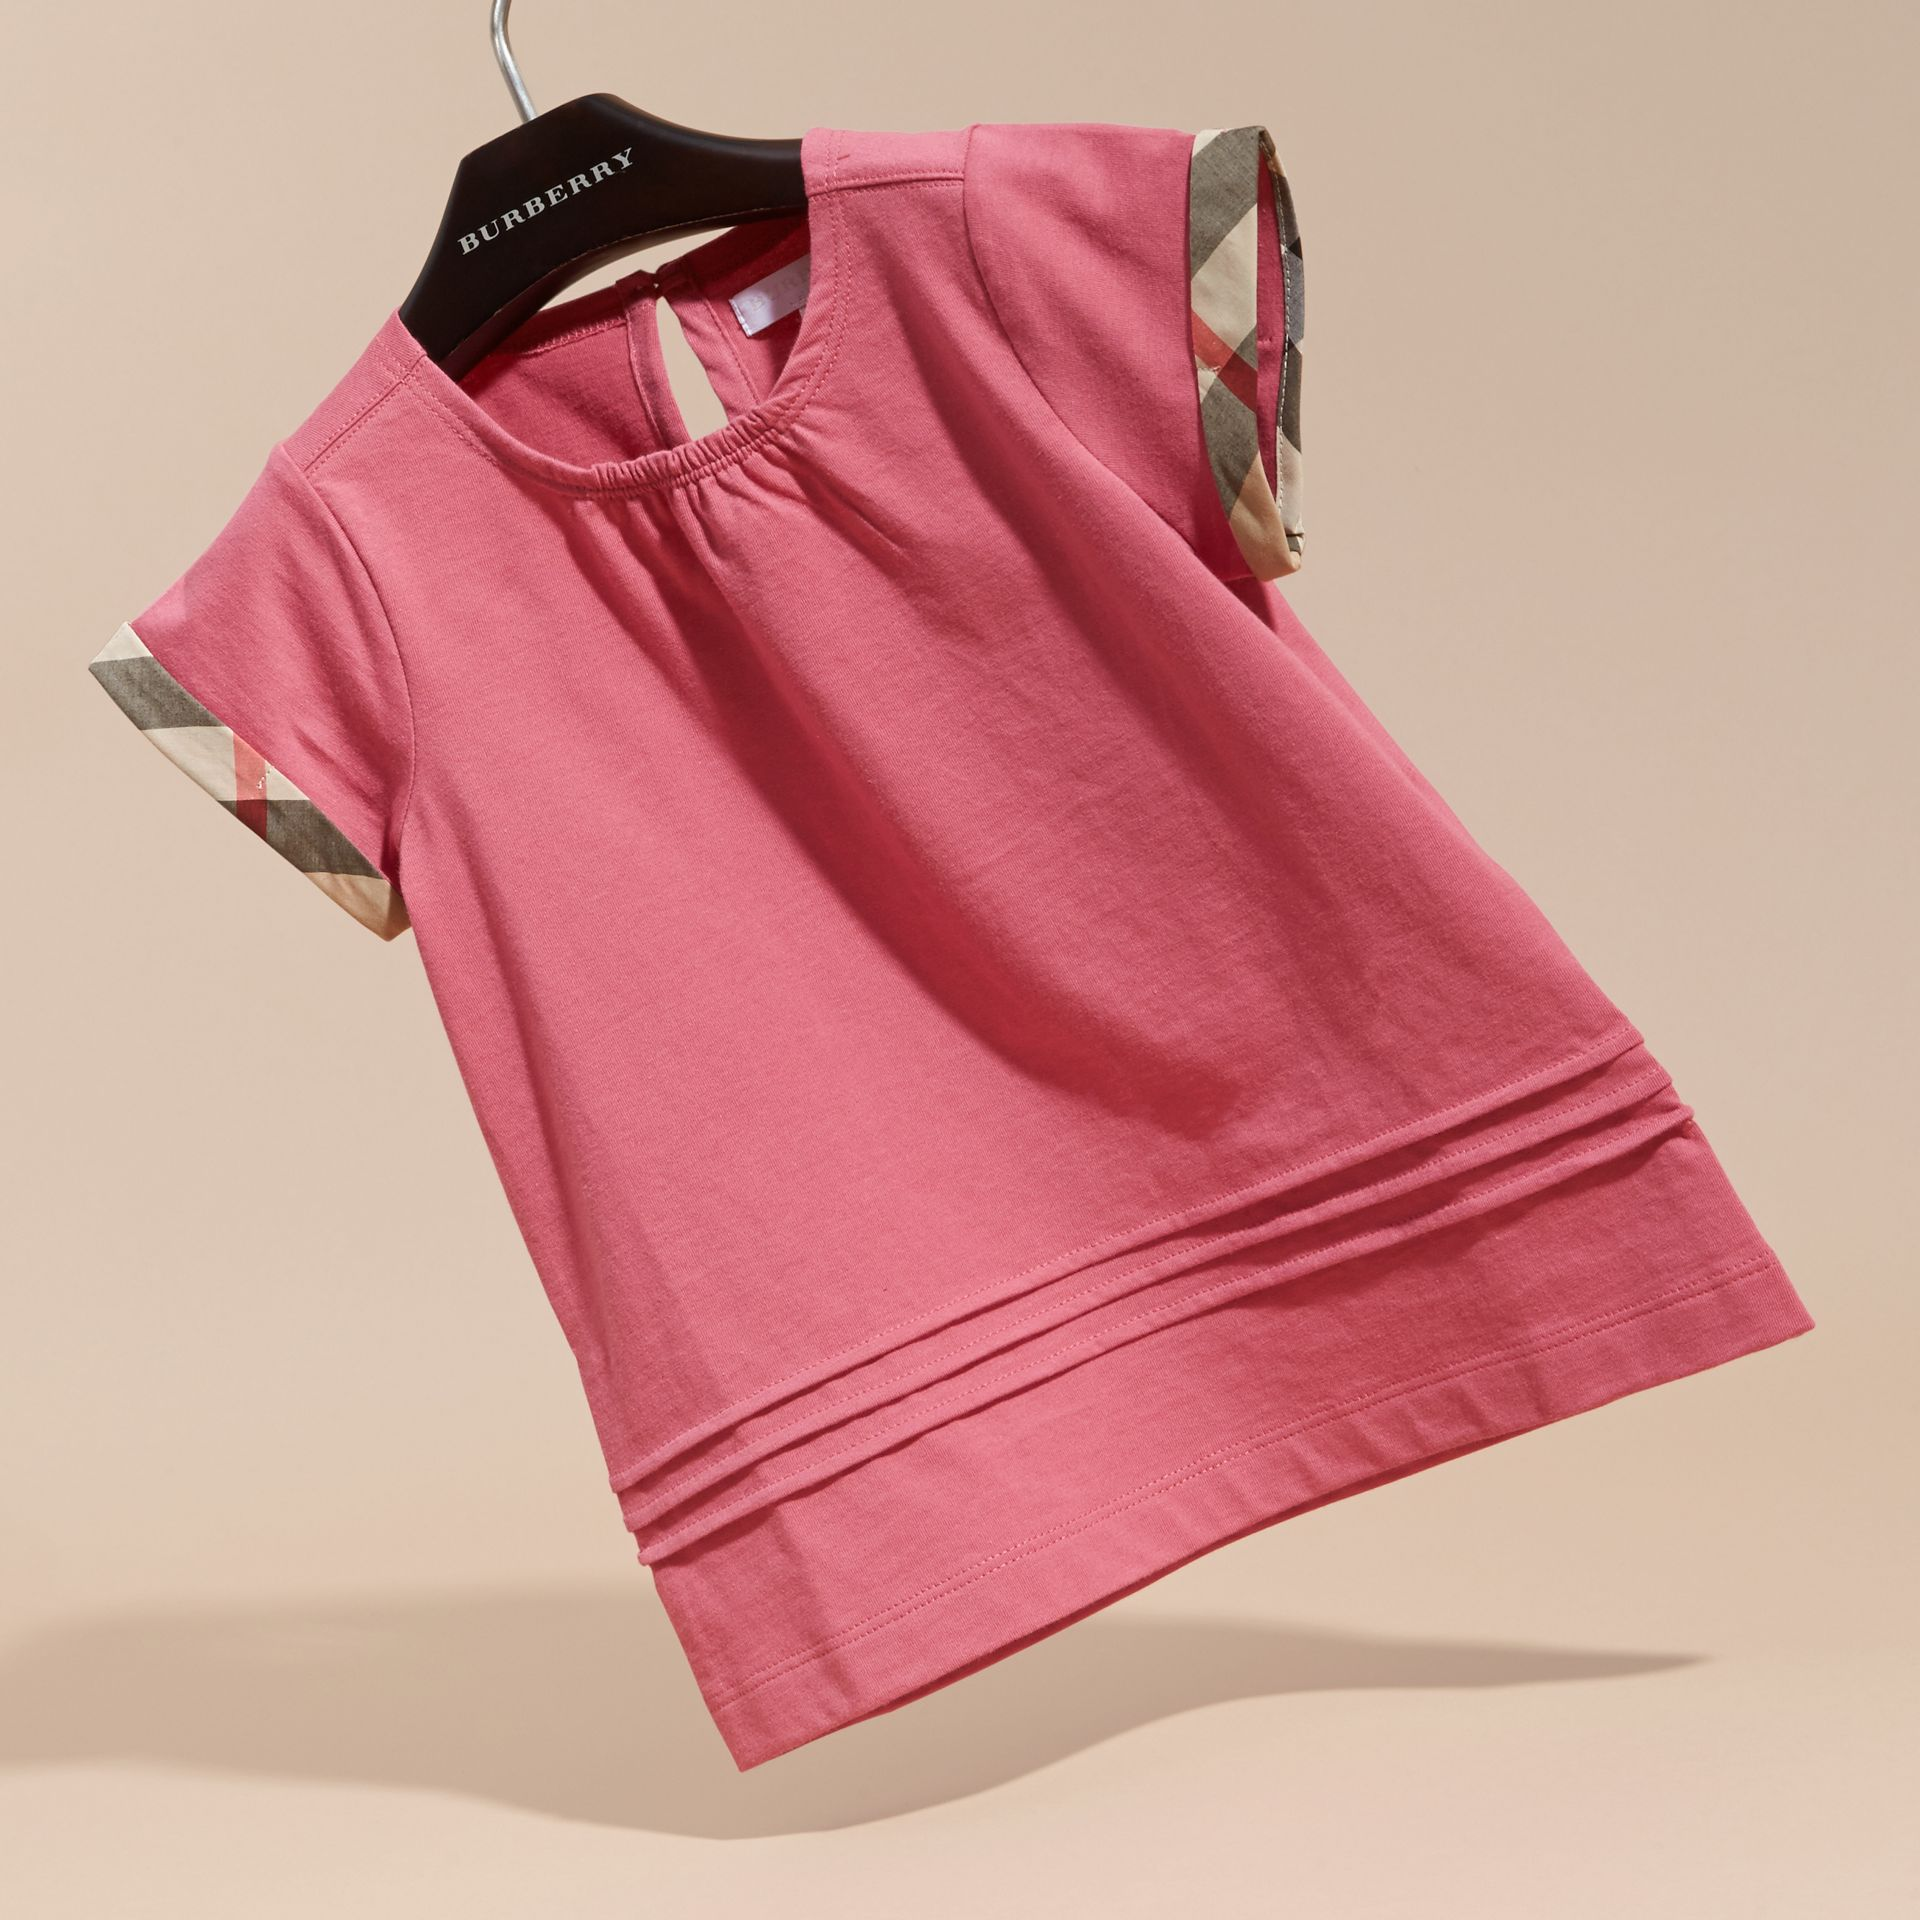 Pleat and Check Detail Cotton T-shirt Pink Azalea - gallery image 3